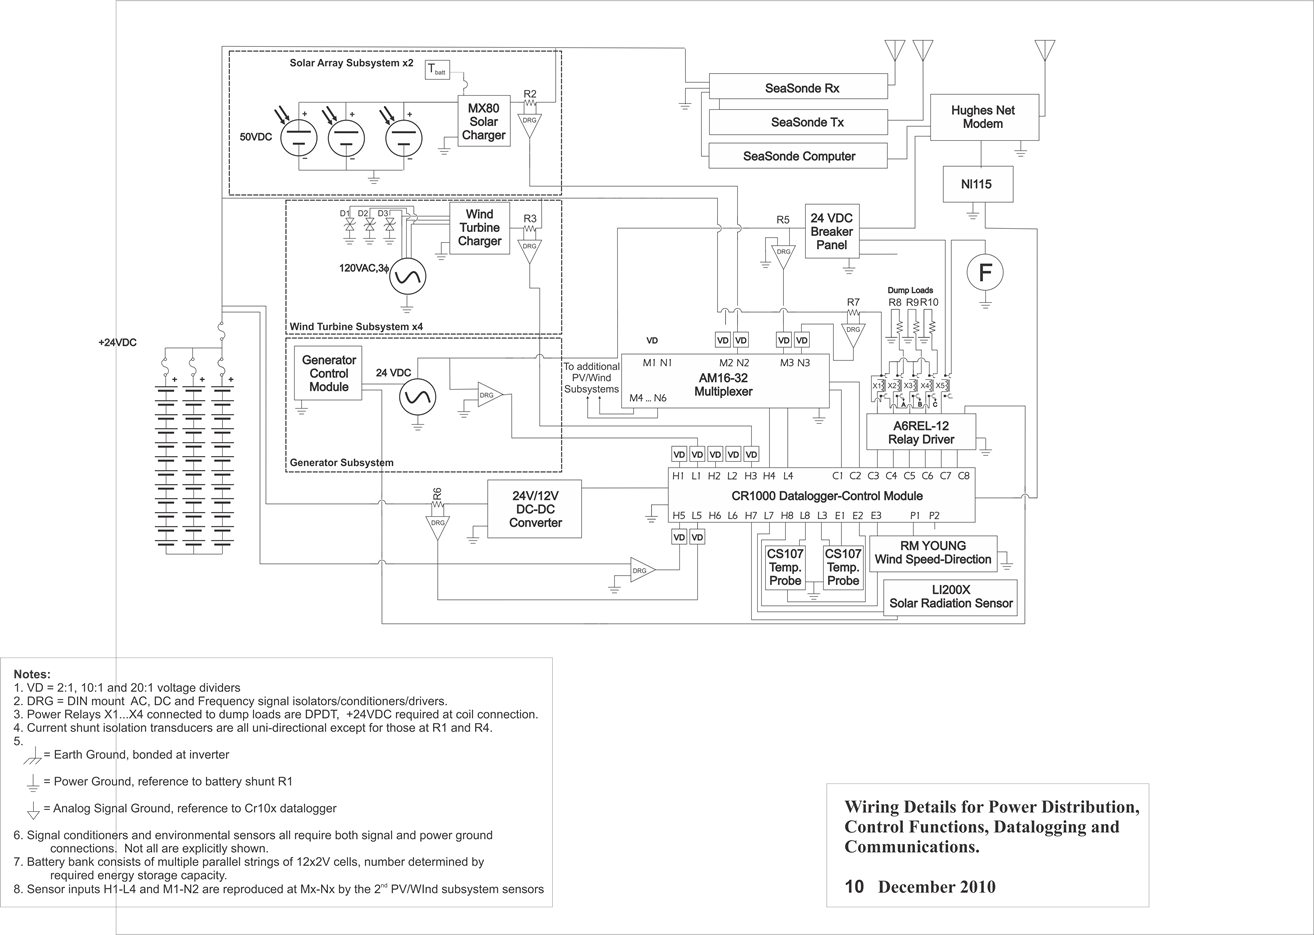 Fan Coil Unit Description Of Operation further Maytag Appliance Parts List Diagram moreover Water Cooler Wiring Diagram also Walk In Freezer Defrost Clock Wiring Diagrams Intermatic Timer furthermore Walk In Cooler Schematic Diagram. on traulsen wiring diagrams